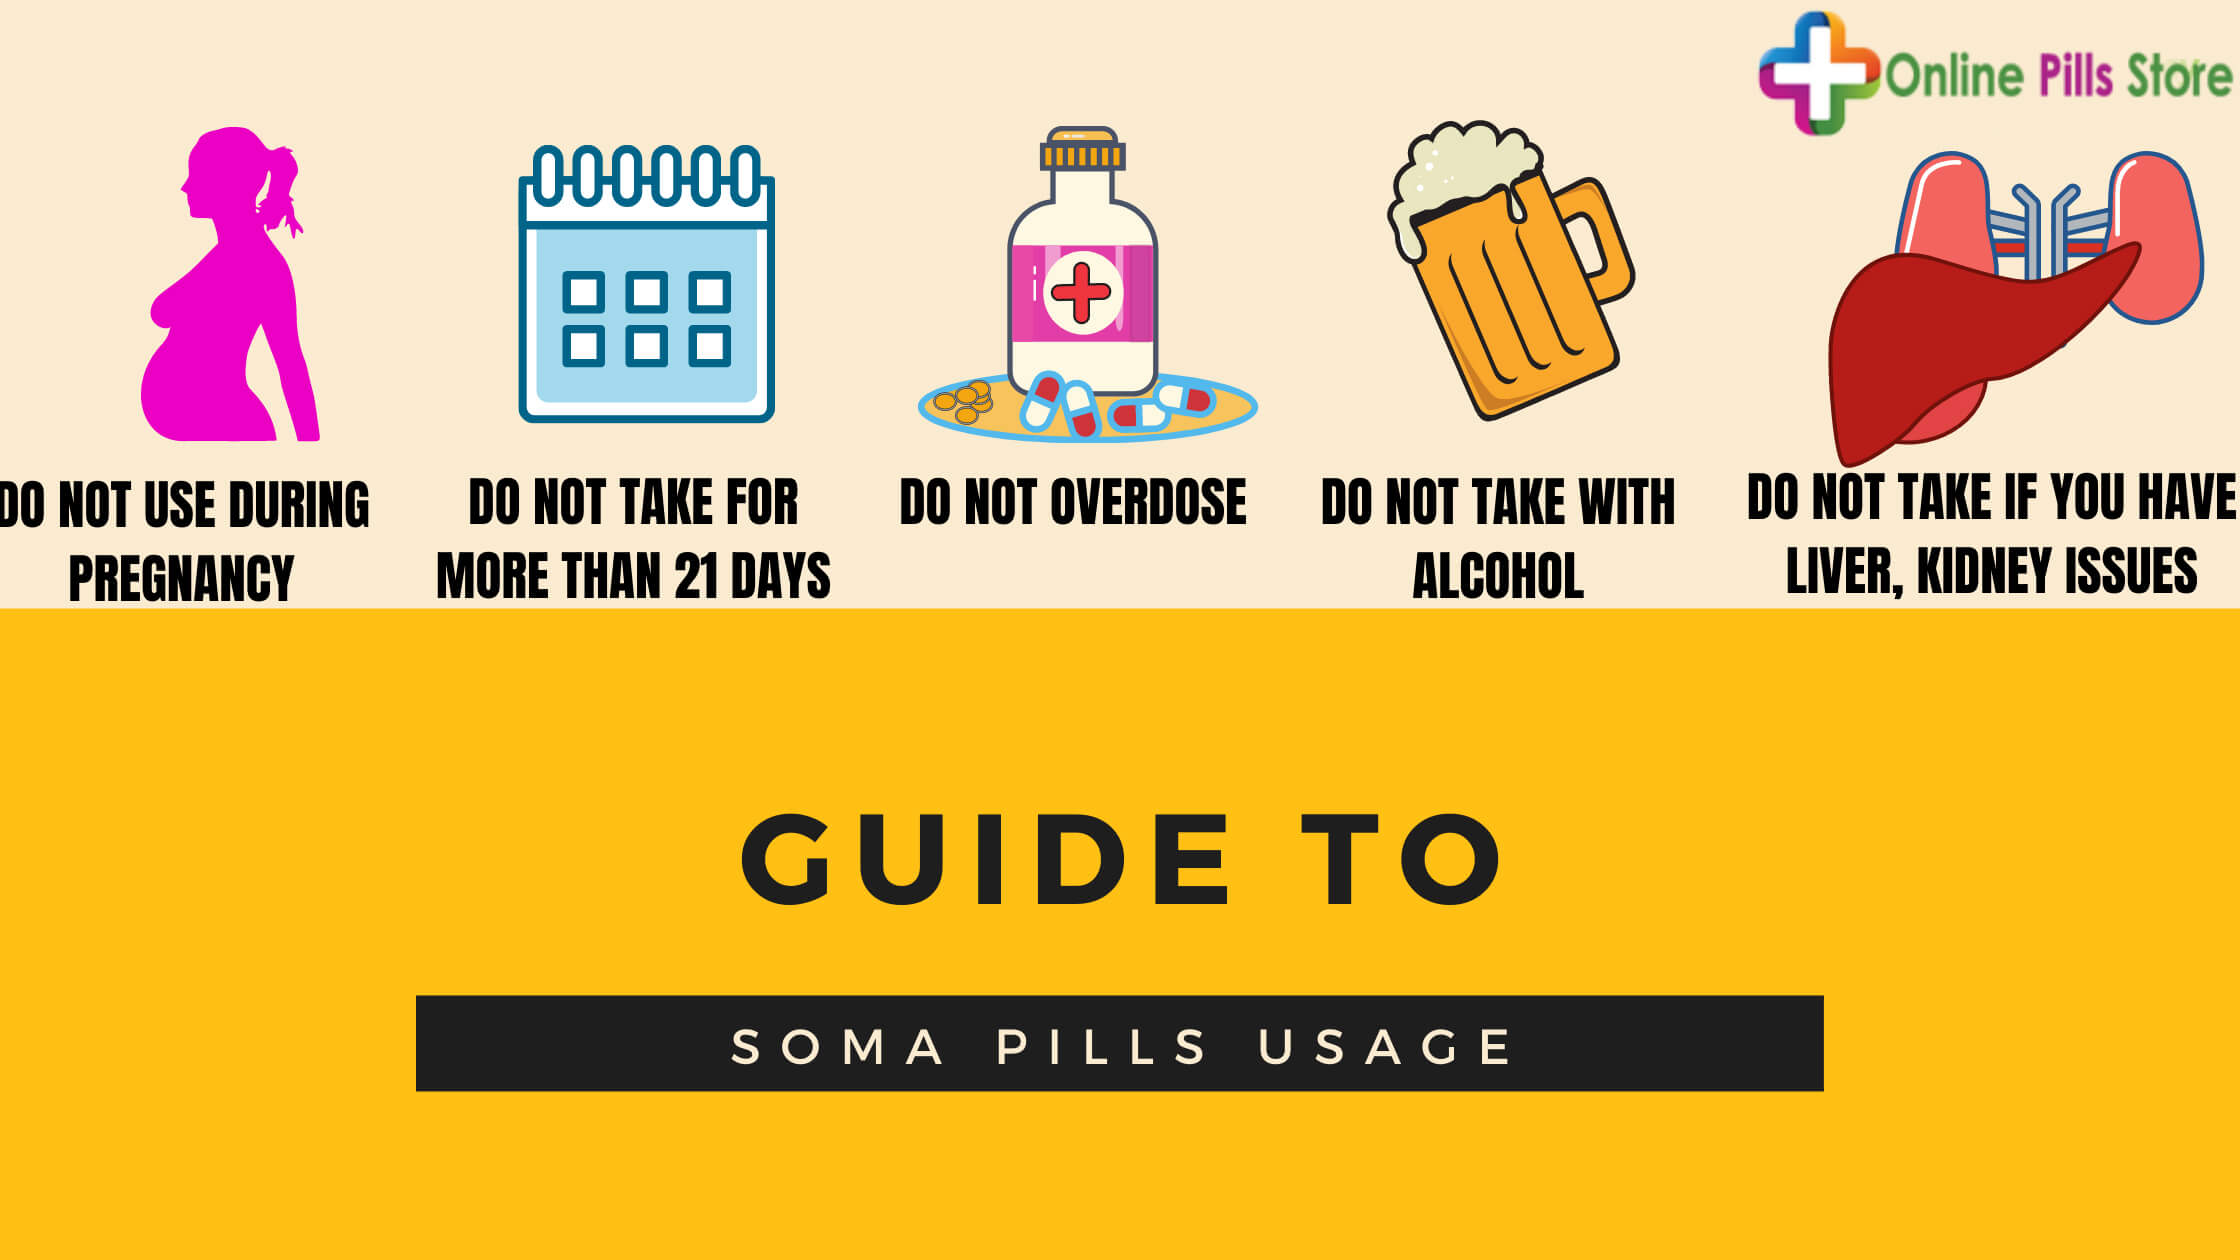 Buy Soma online without prescription